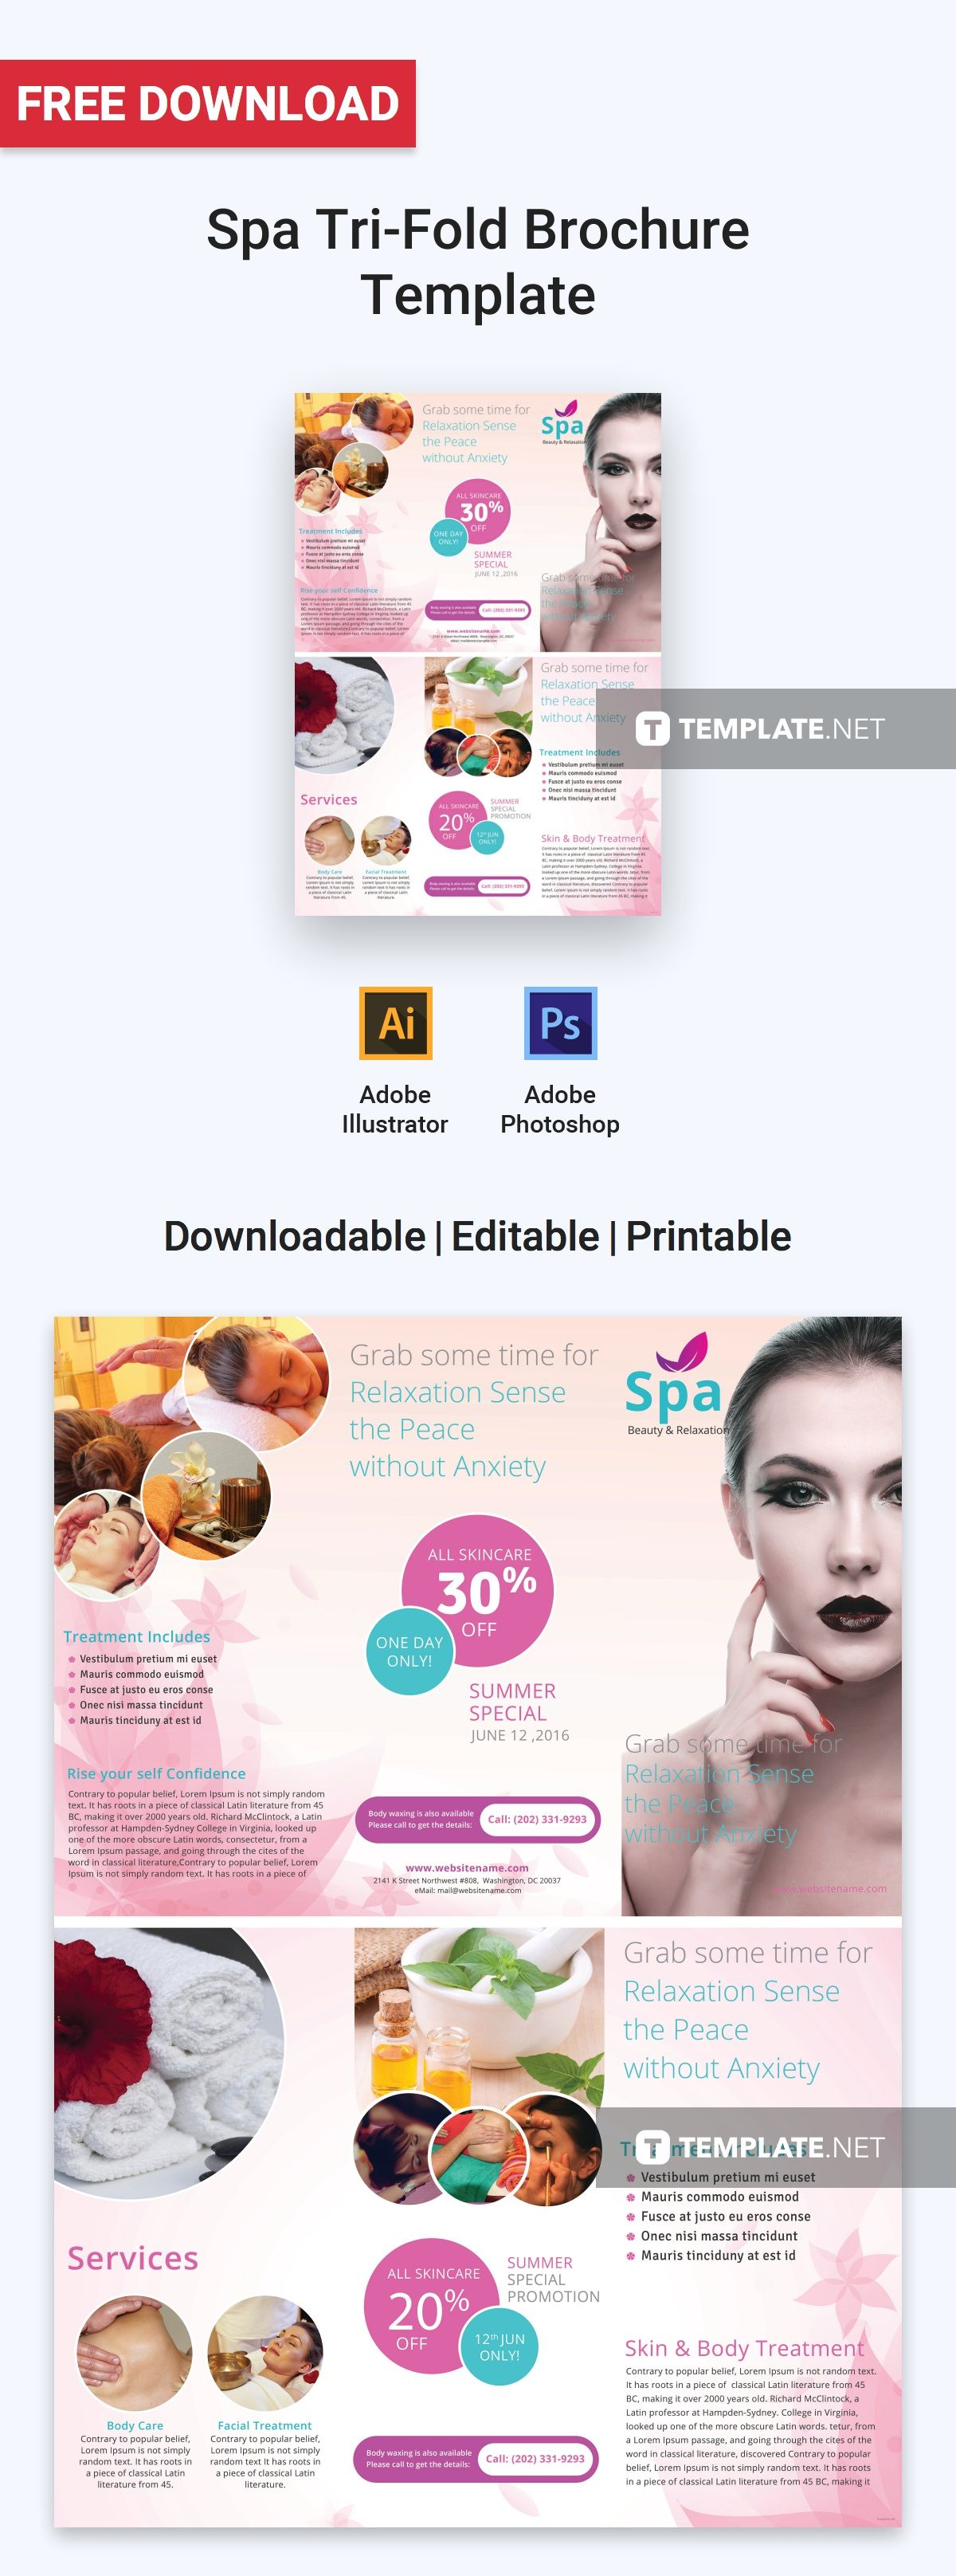 Download this striking trifold brochure template that